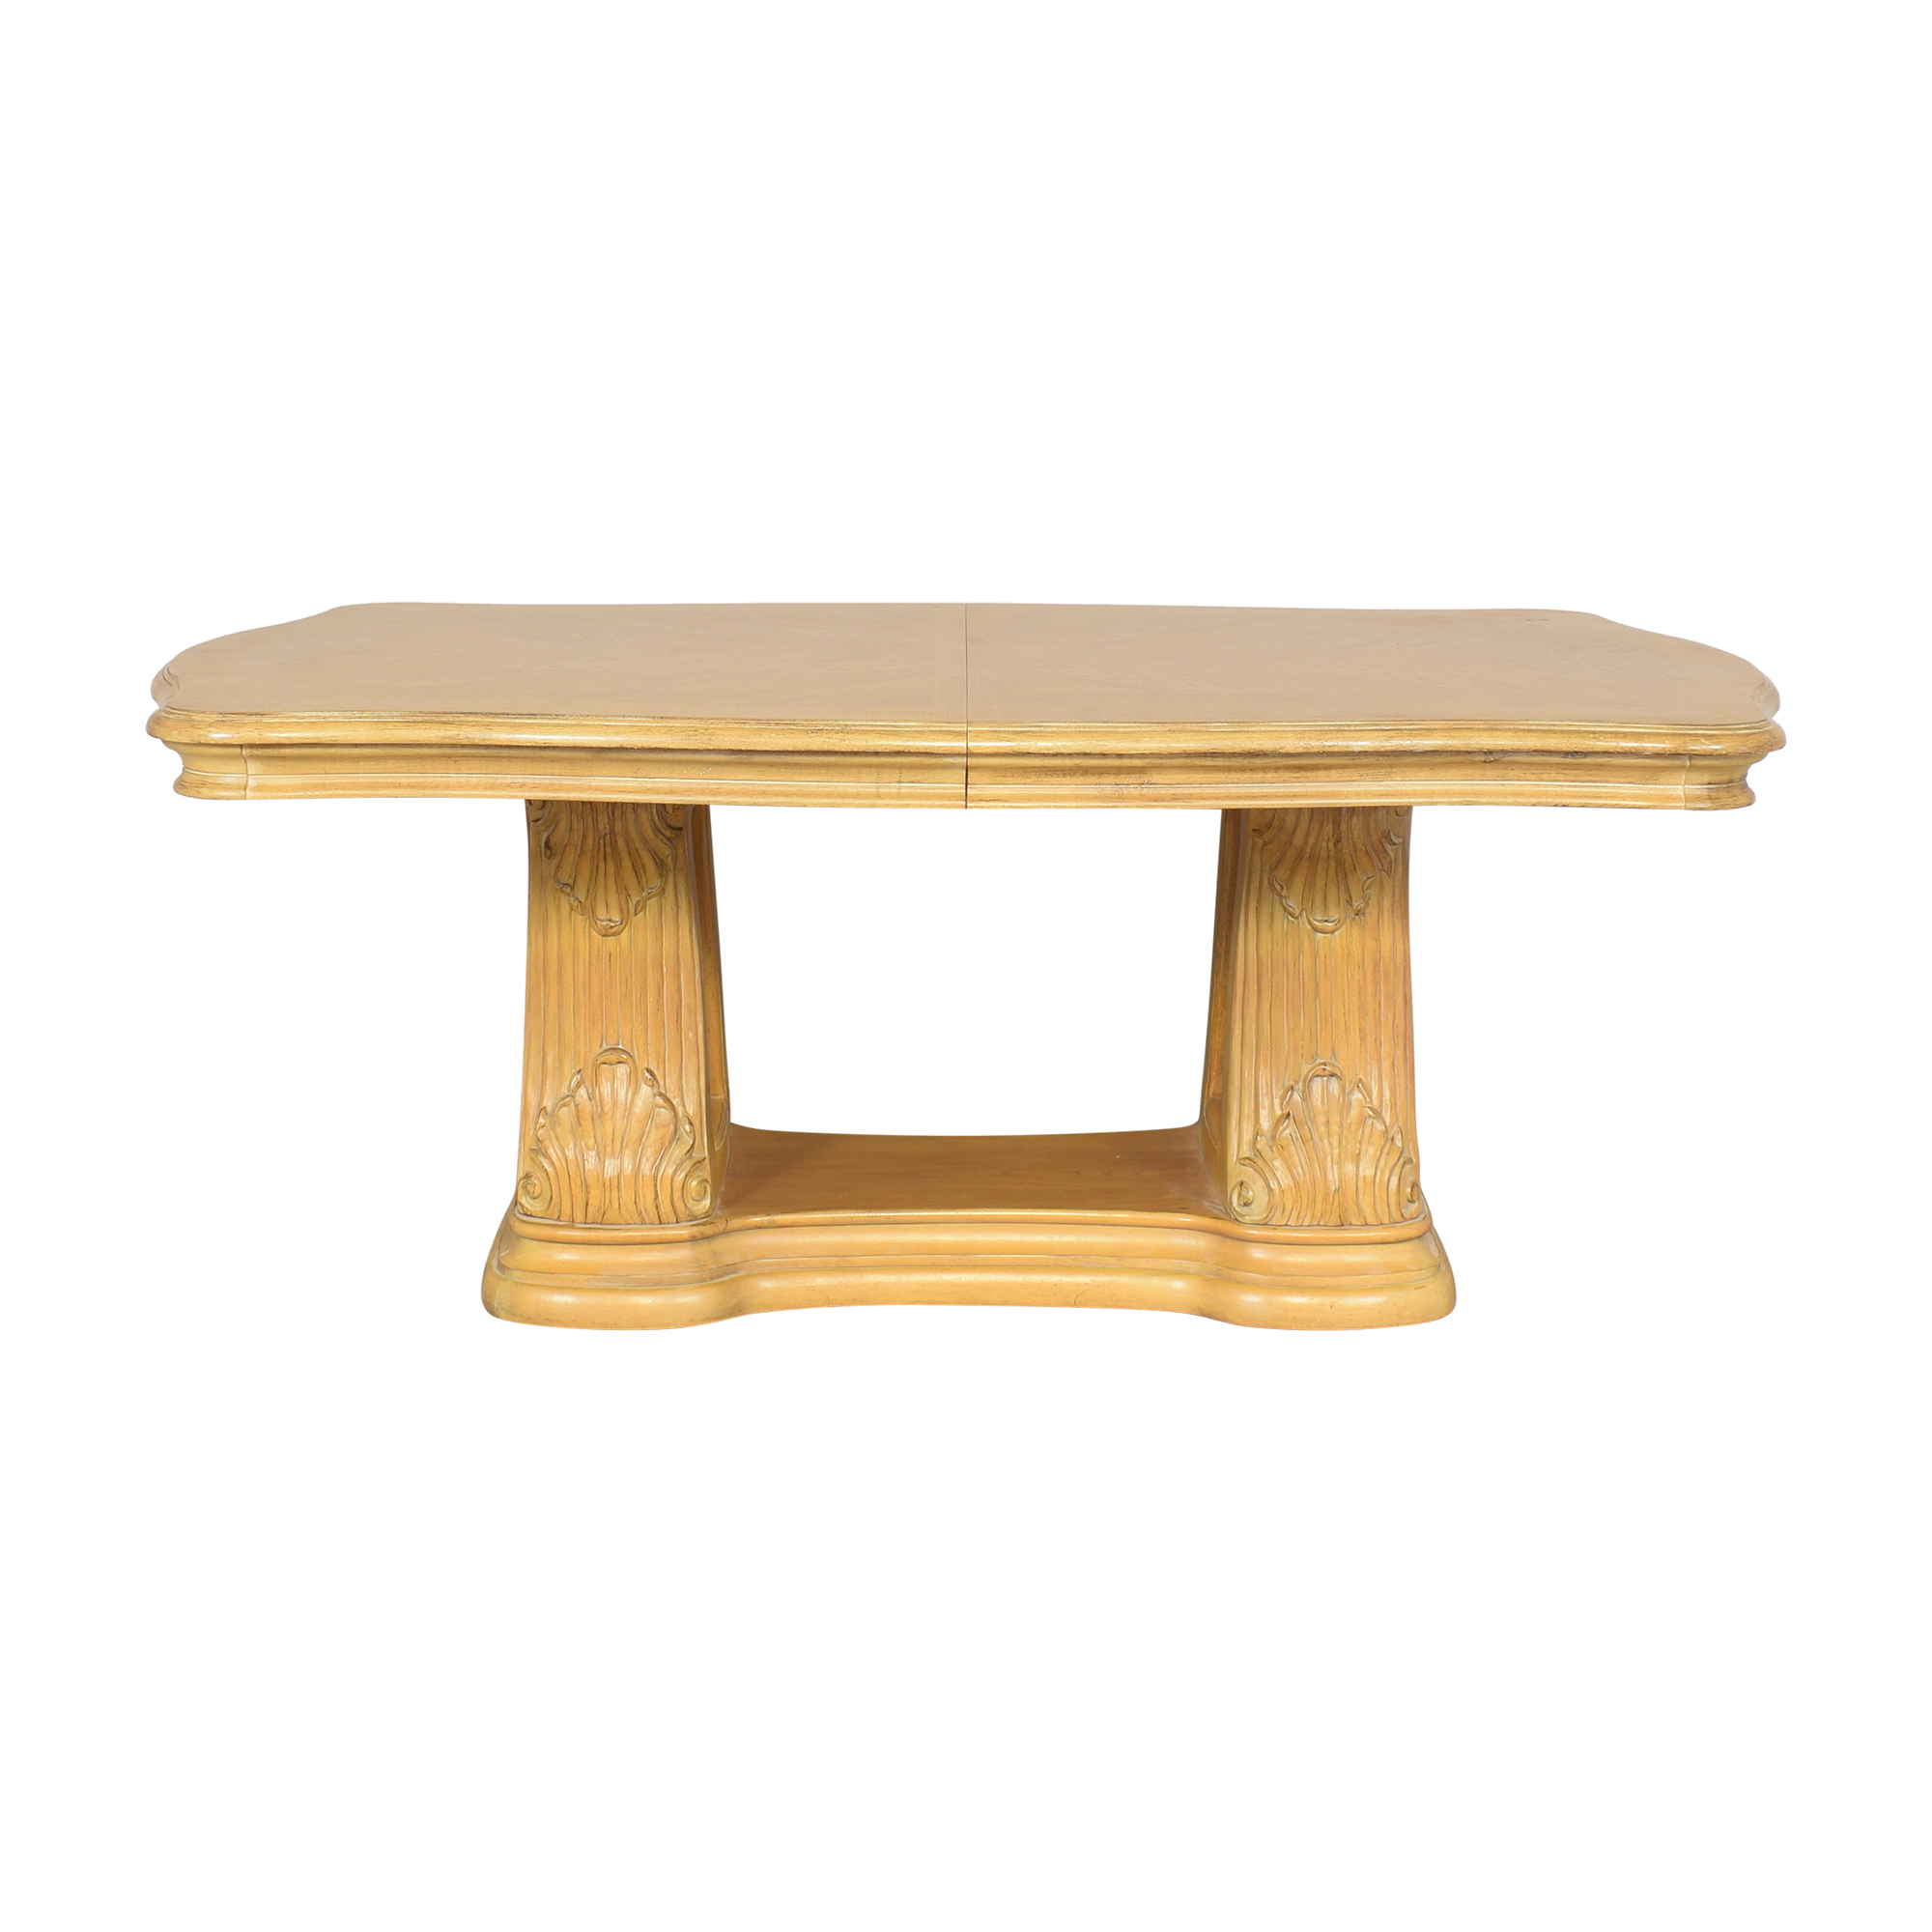 Bernhardt Bernhardt Extension Dining Table ct